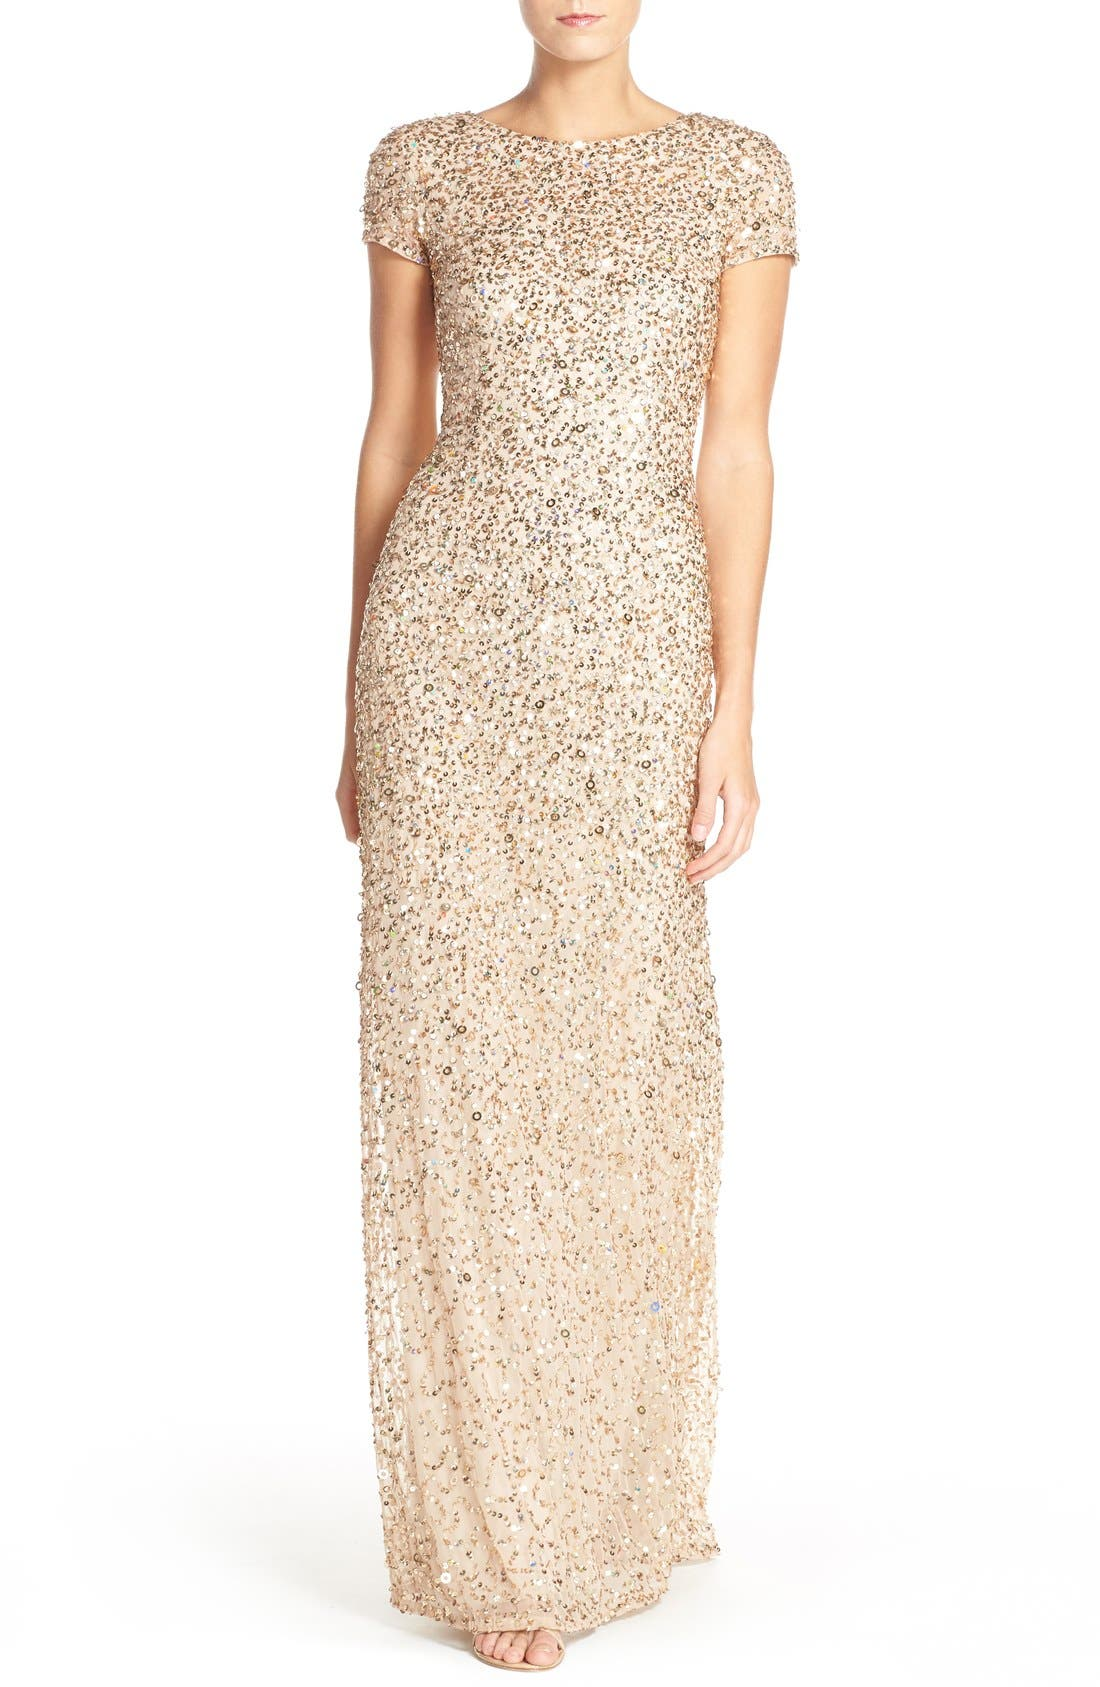 Adrianna Papell Short Sleeve Sequin Mesh Gown (Regular & Petite ...